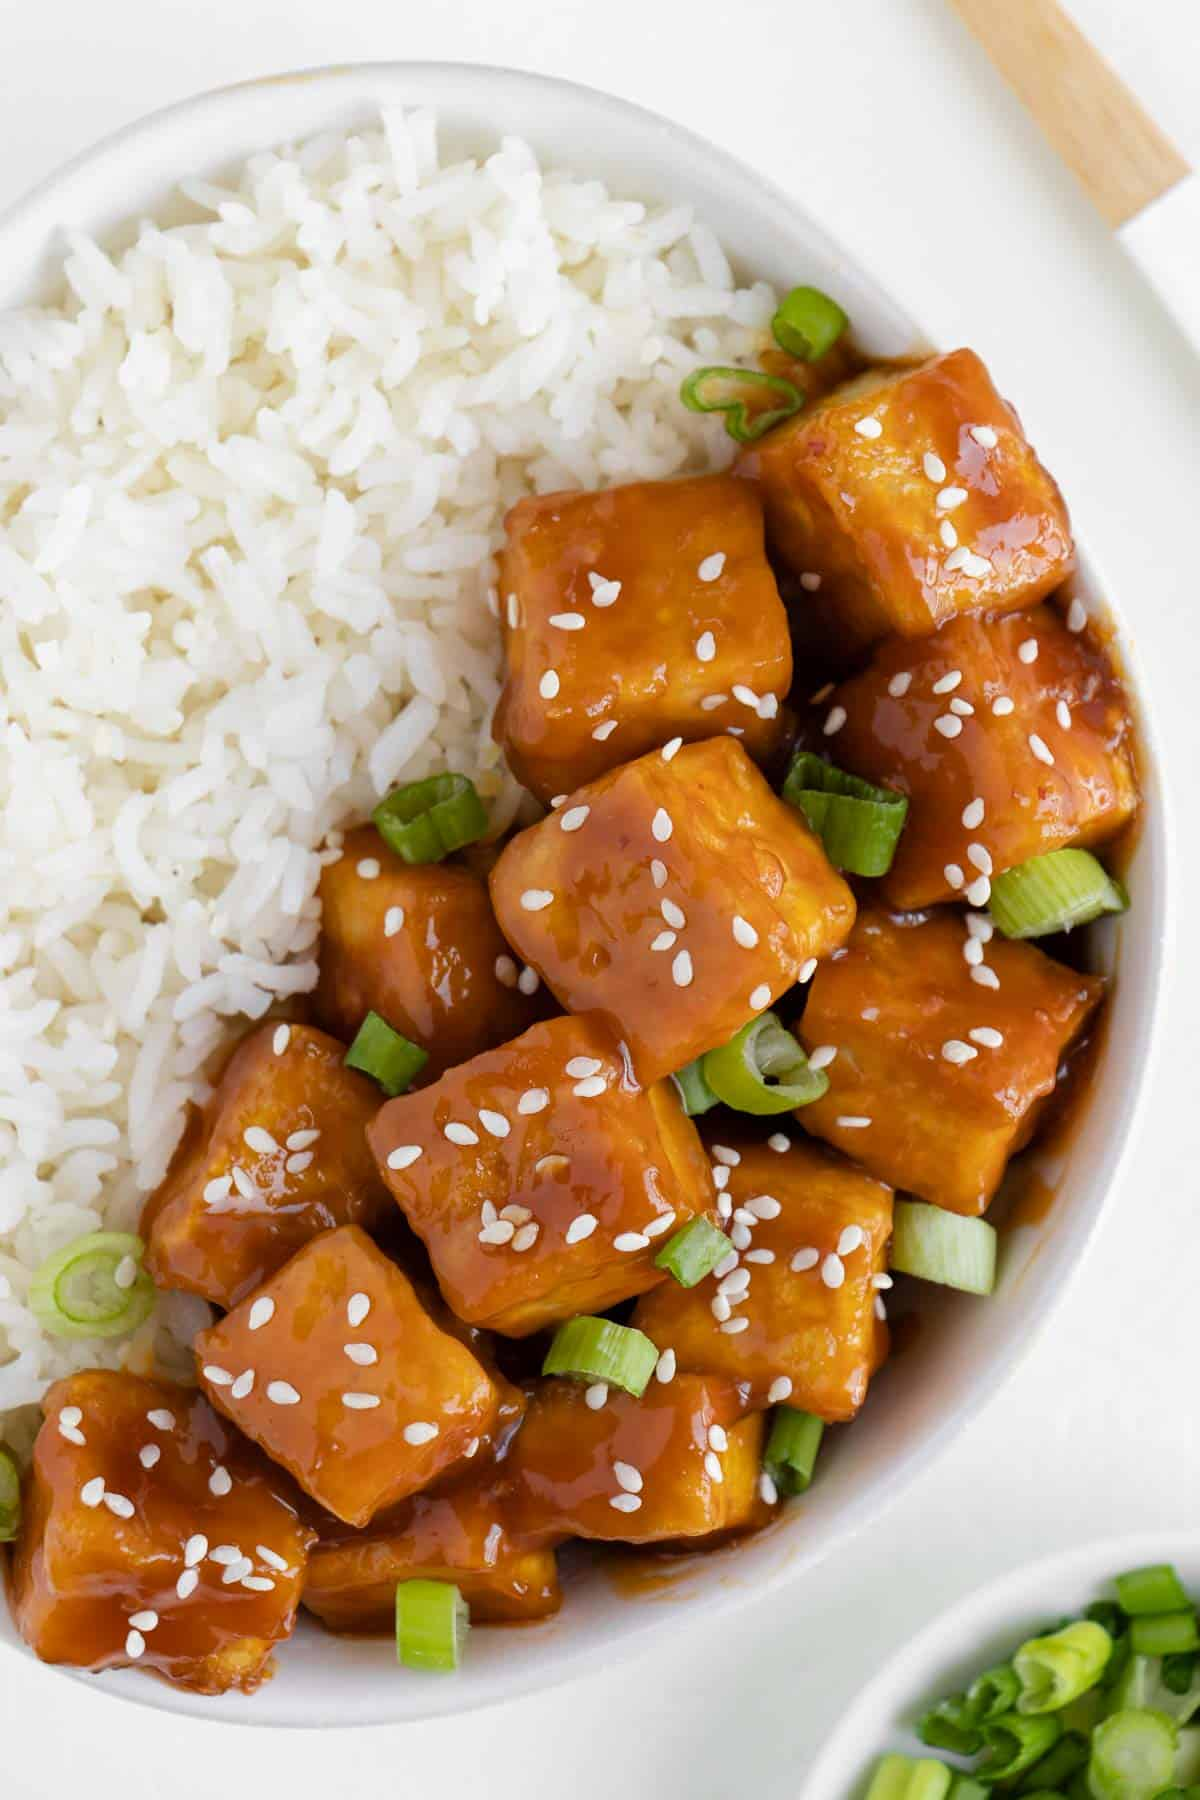 vegan orange tofu in a bowl with white rice